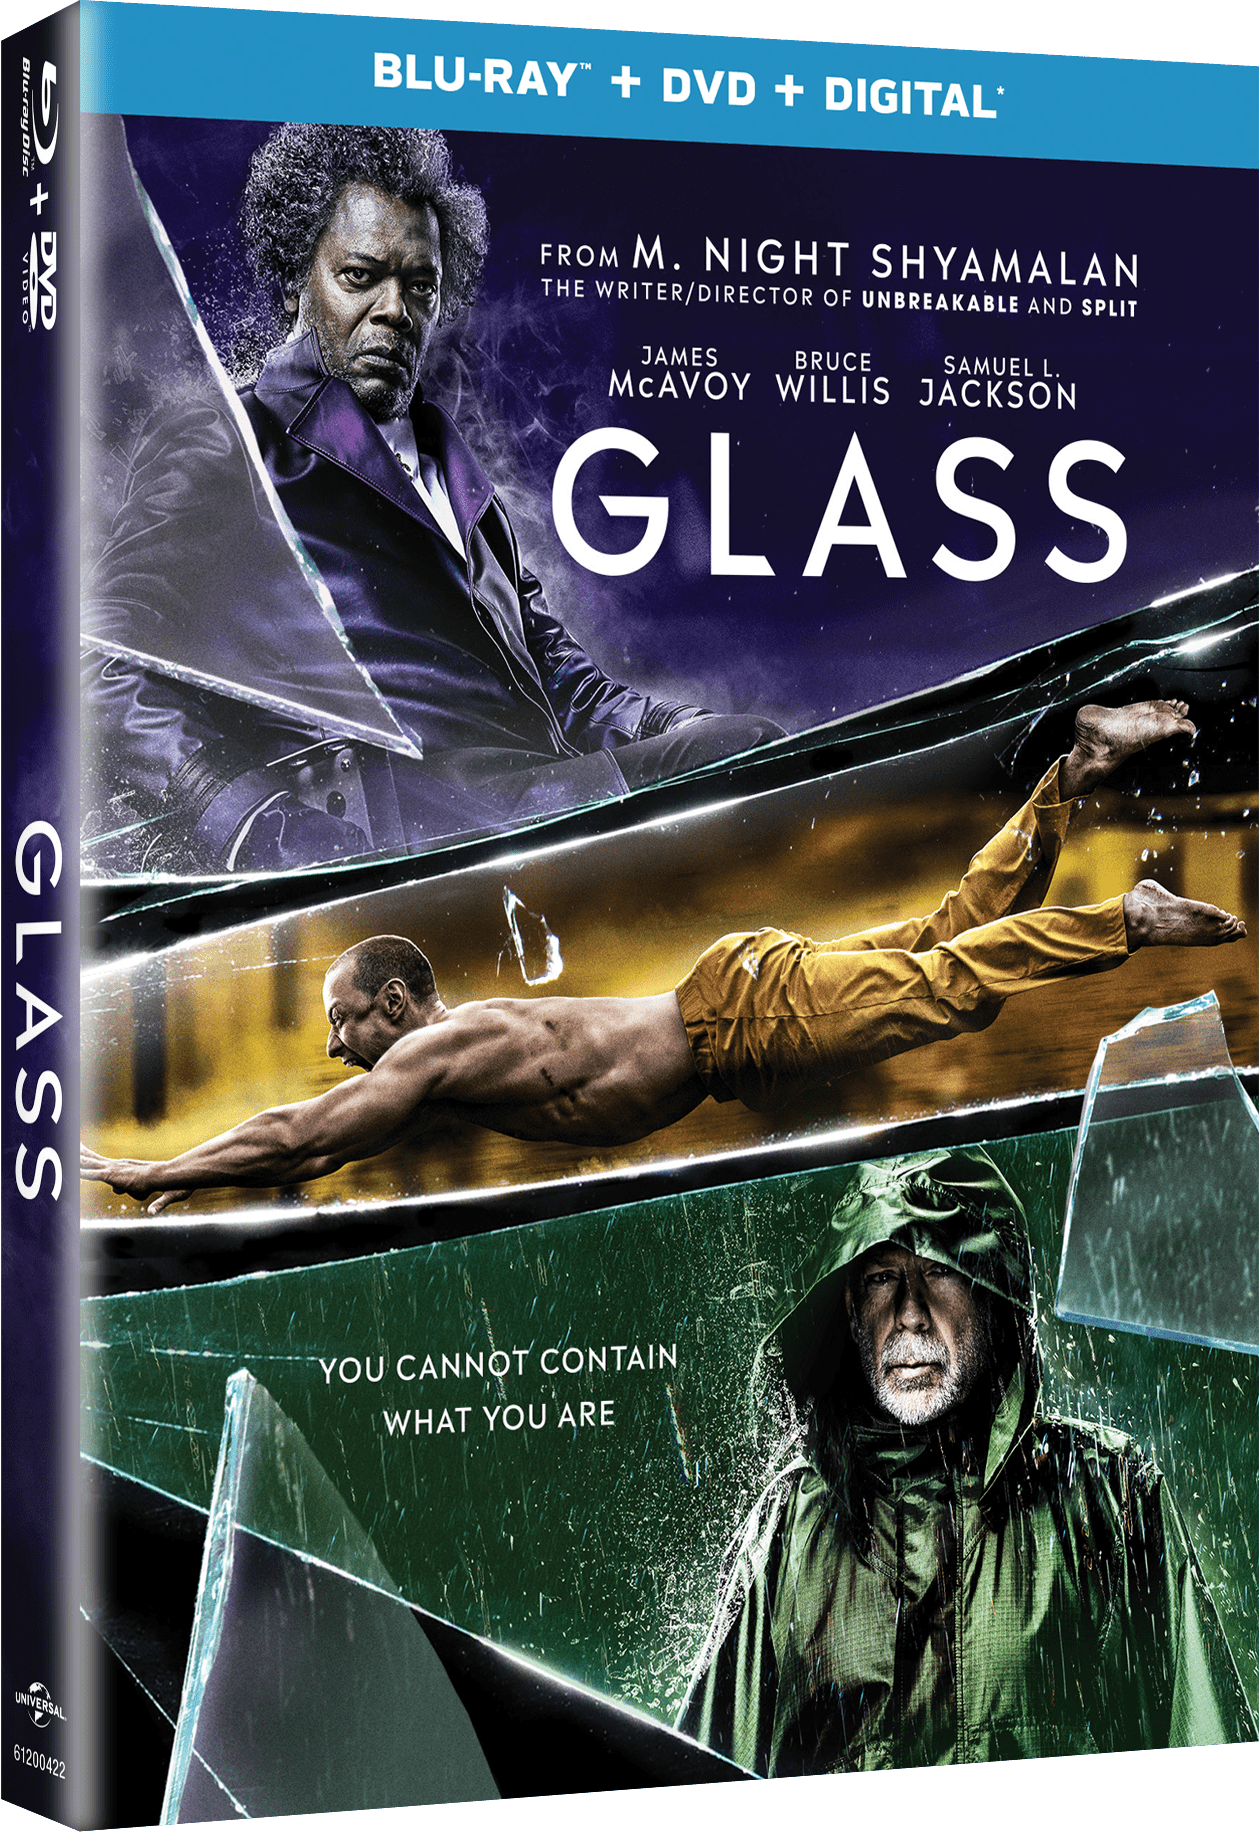 GLASS Movie Review & DVD Giveaway